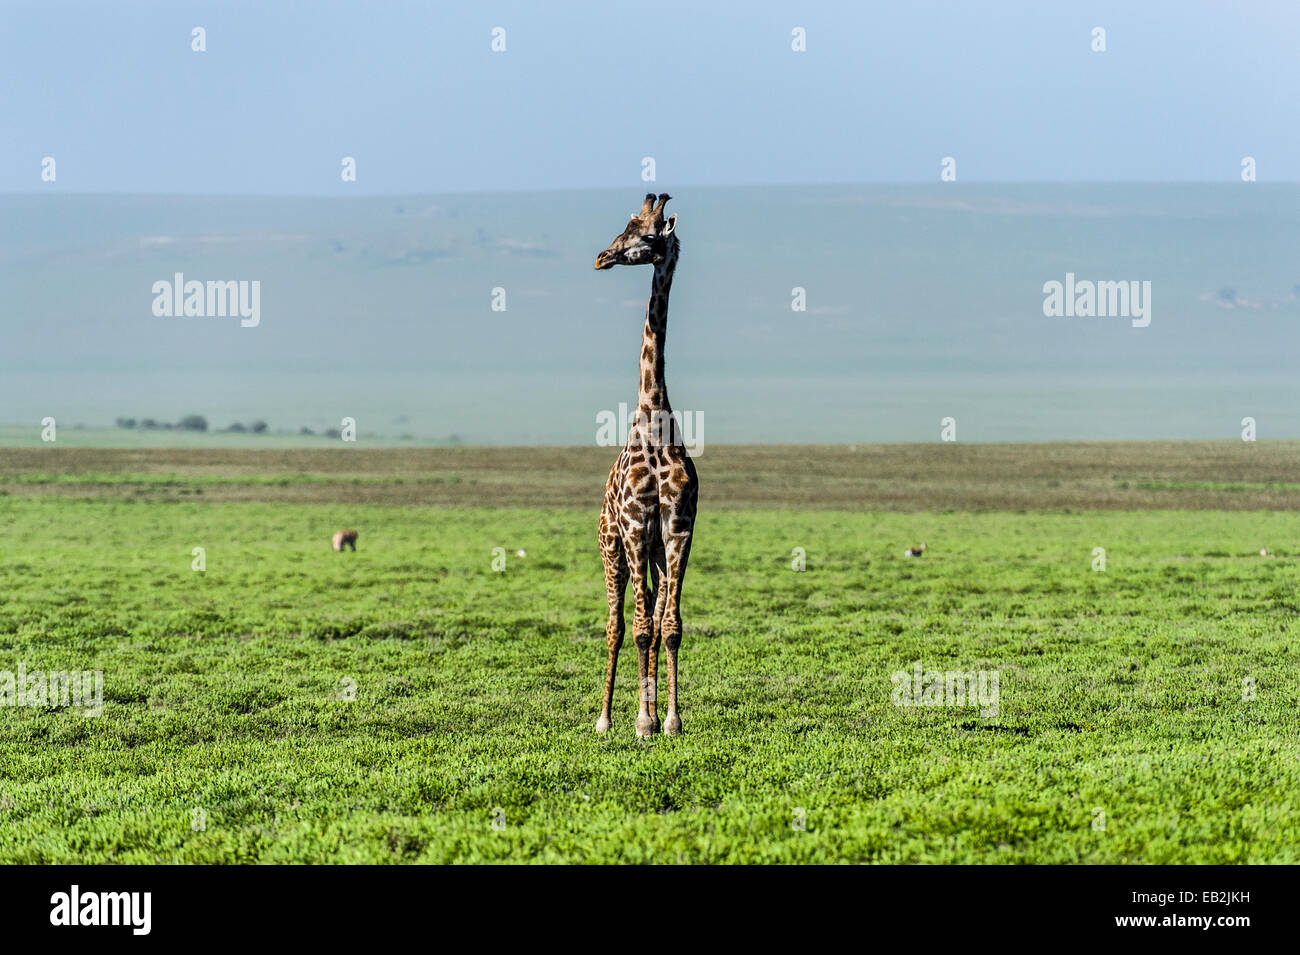 An exposed and solitary Giraffe surveying the empty short grass savannah plains. Stock Photo